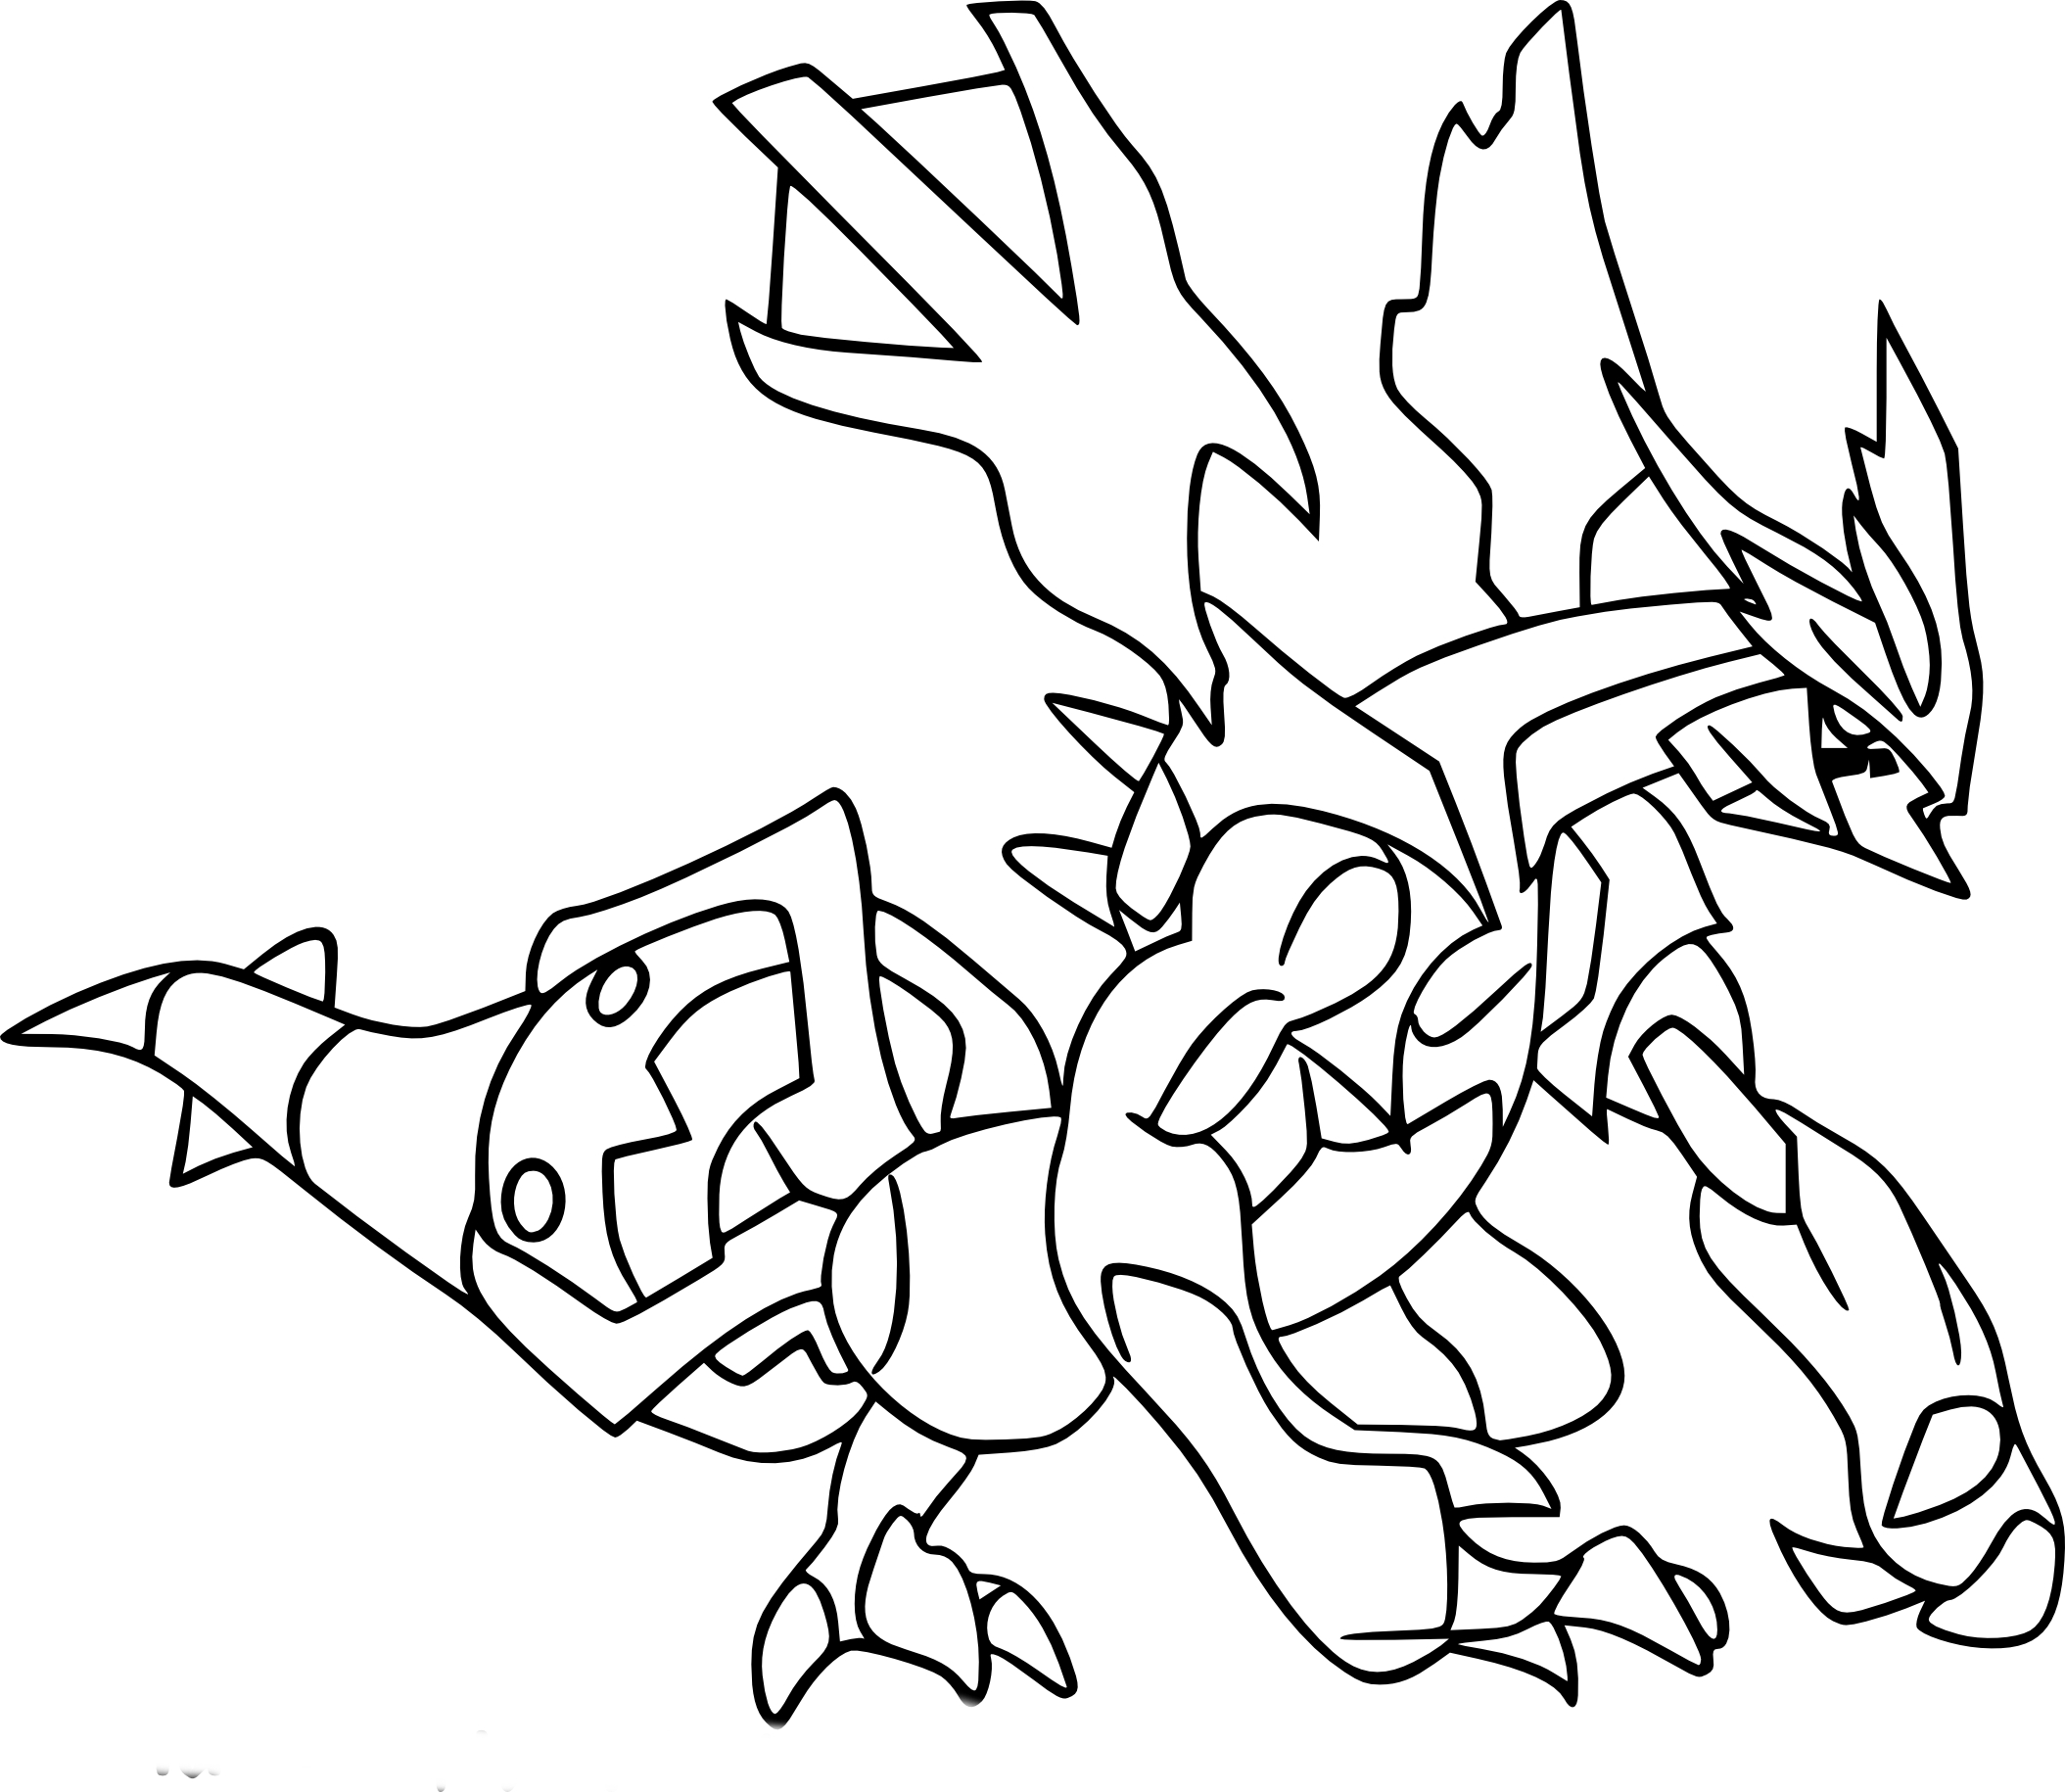 pokemon color best pokemon coloring pages for kids and adults collection pokemon color